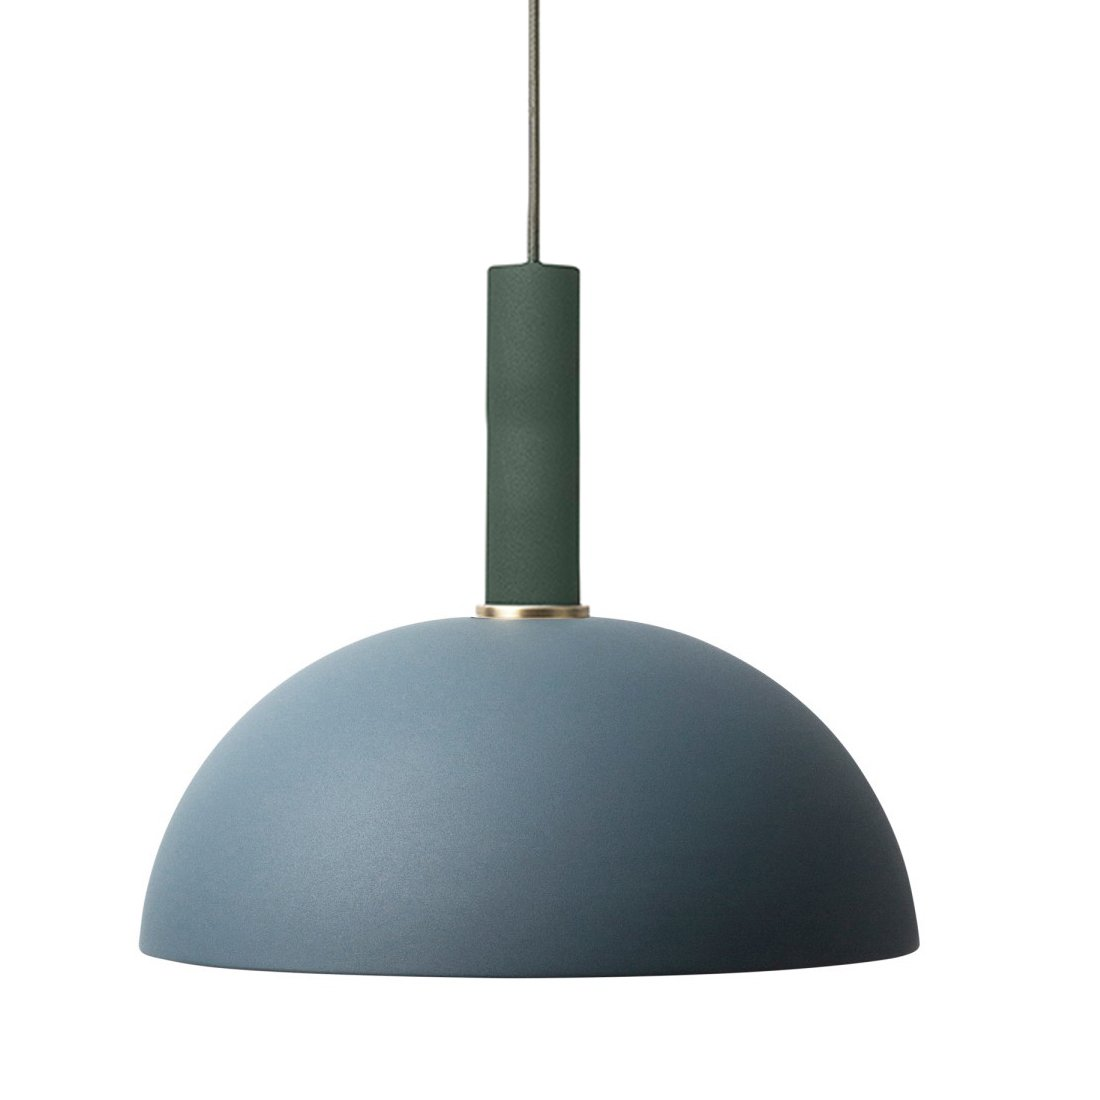 Ferm Living Collect Dome High Hanglamp Donkergroen Donkerblauw